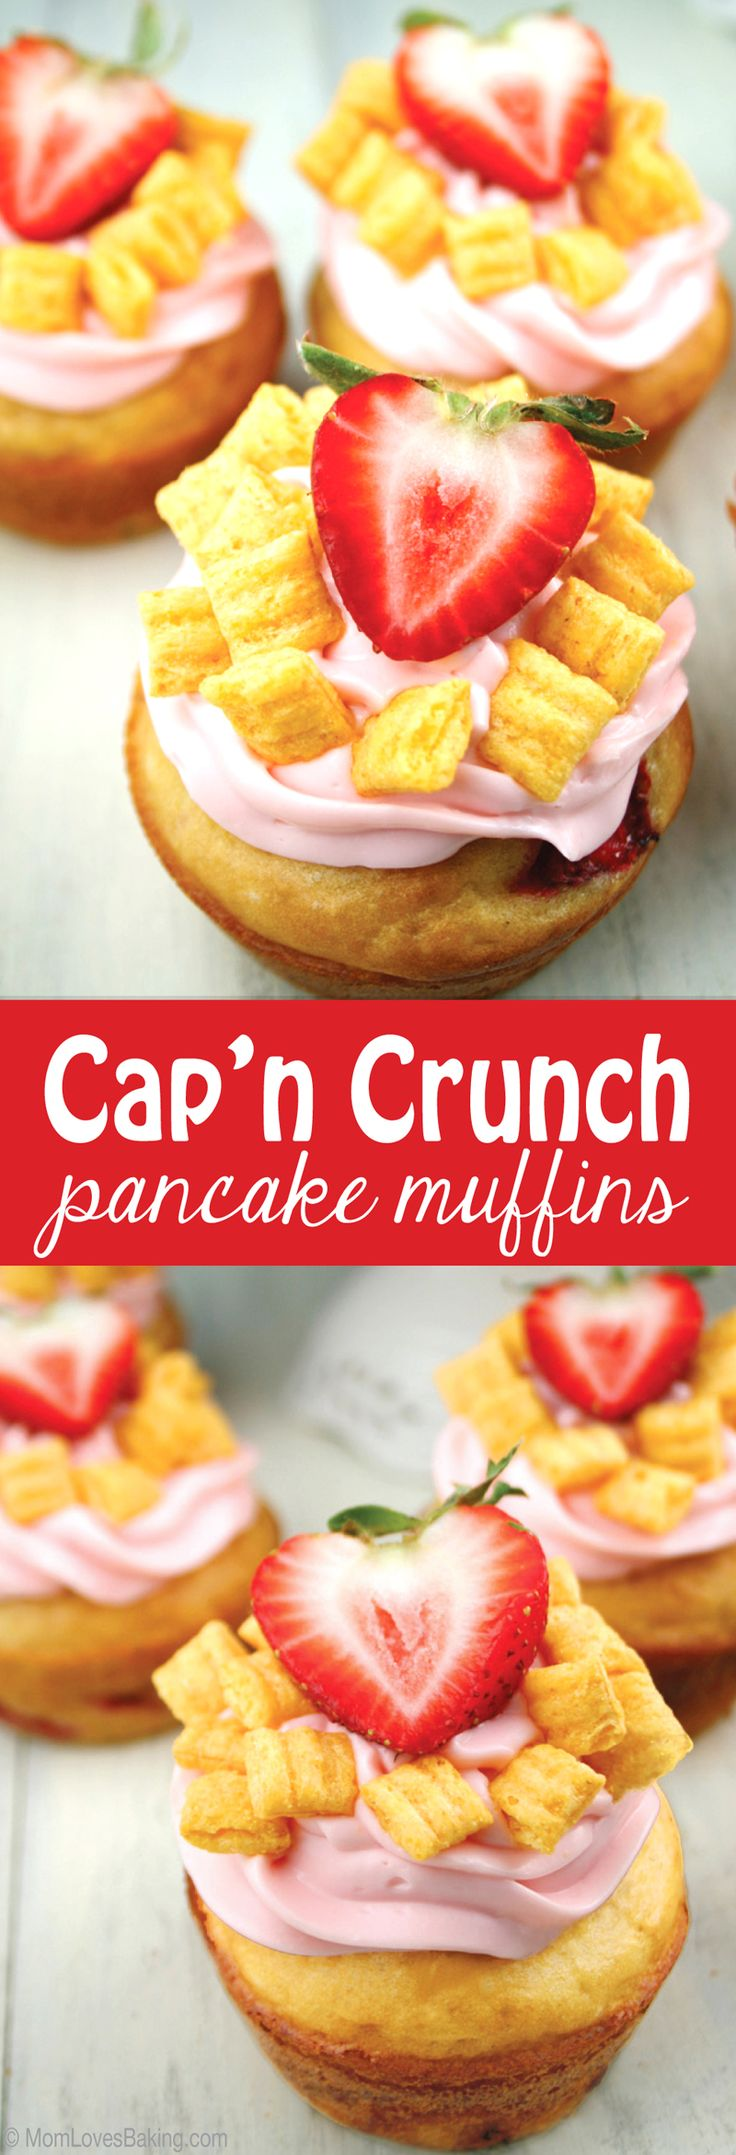 Made with crushed Cap'n Crunch cereal and fresh strawberries baked right in. Then topped with strawberry cream cheese, plus more cereal and a strawberry on top. #QuakerTime #ad